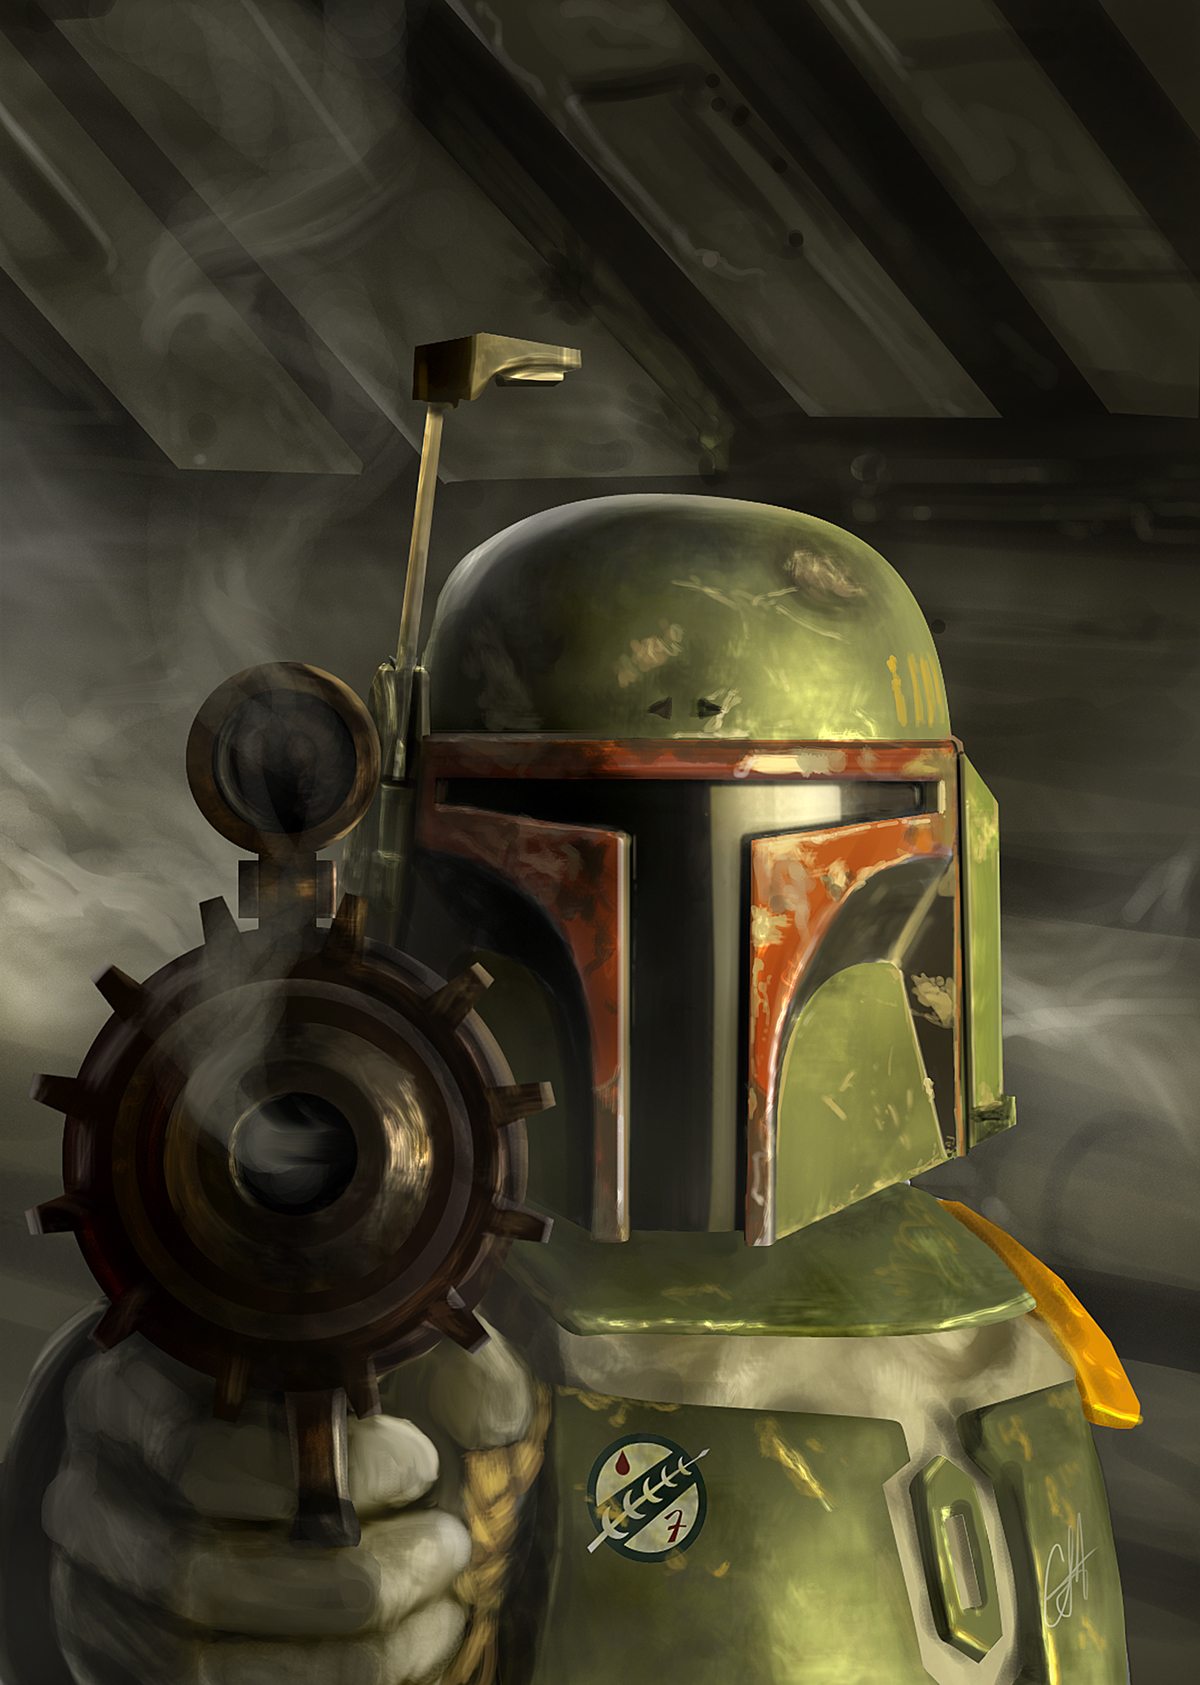 star wars blood ties boba fett is dead 4 wookieepedia the star wars wiki. Black Bedroom Furniture Sets. Home Design Ideas